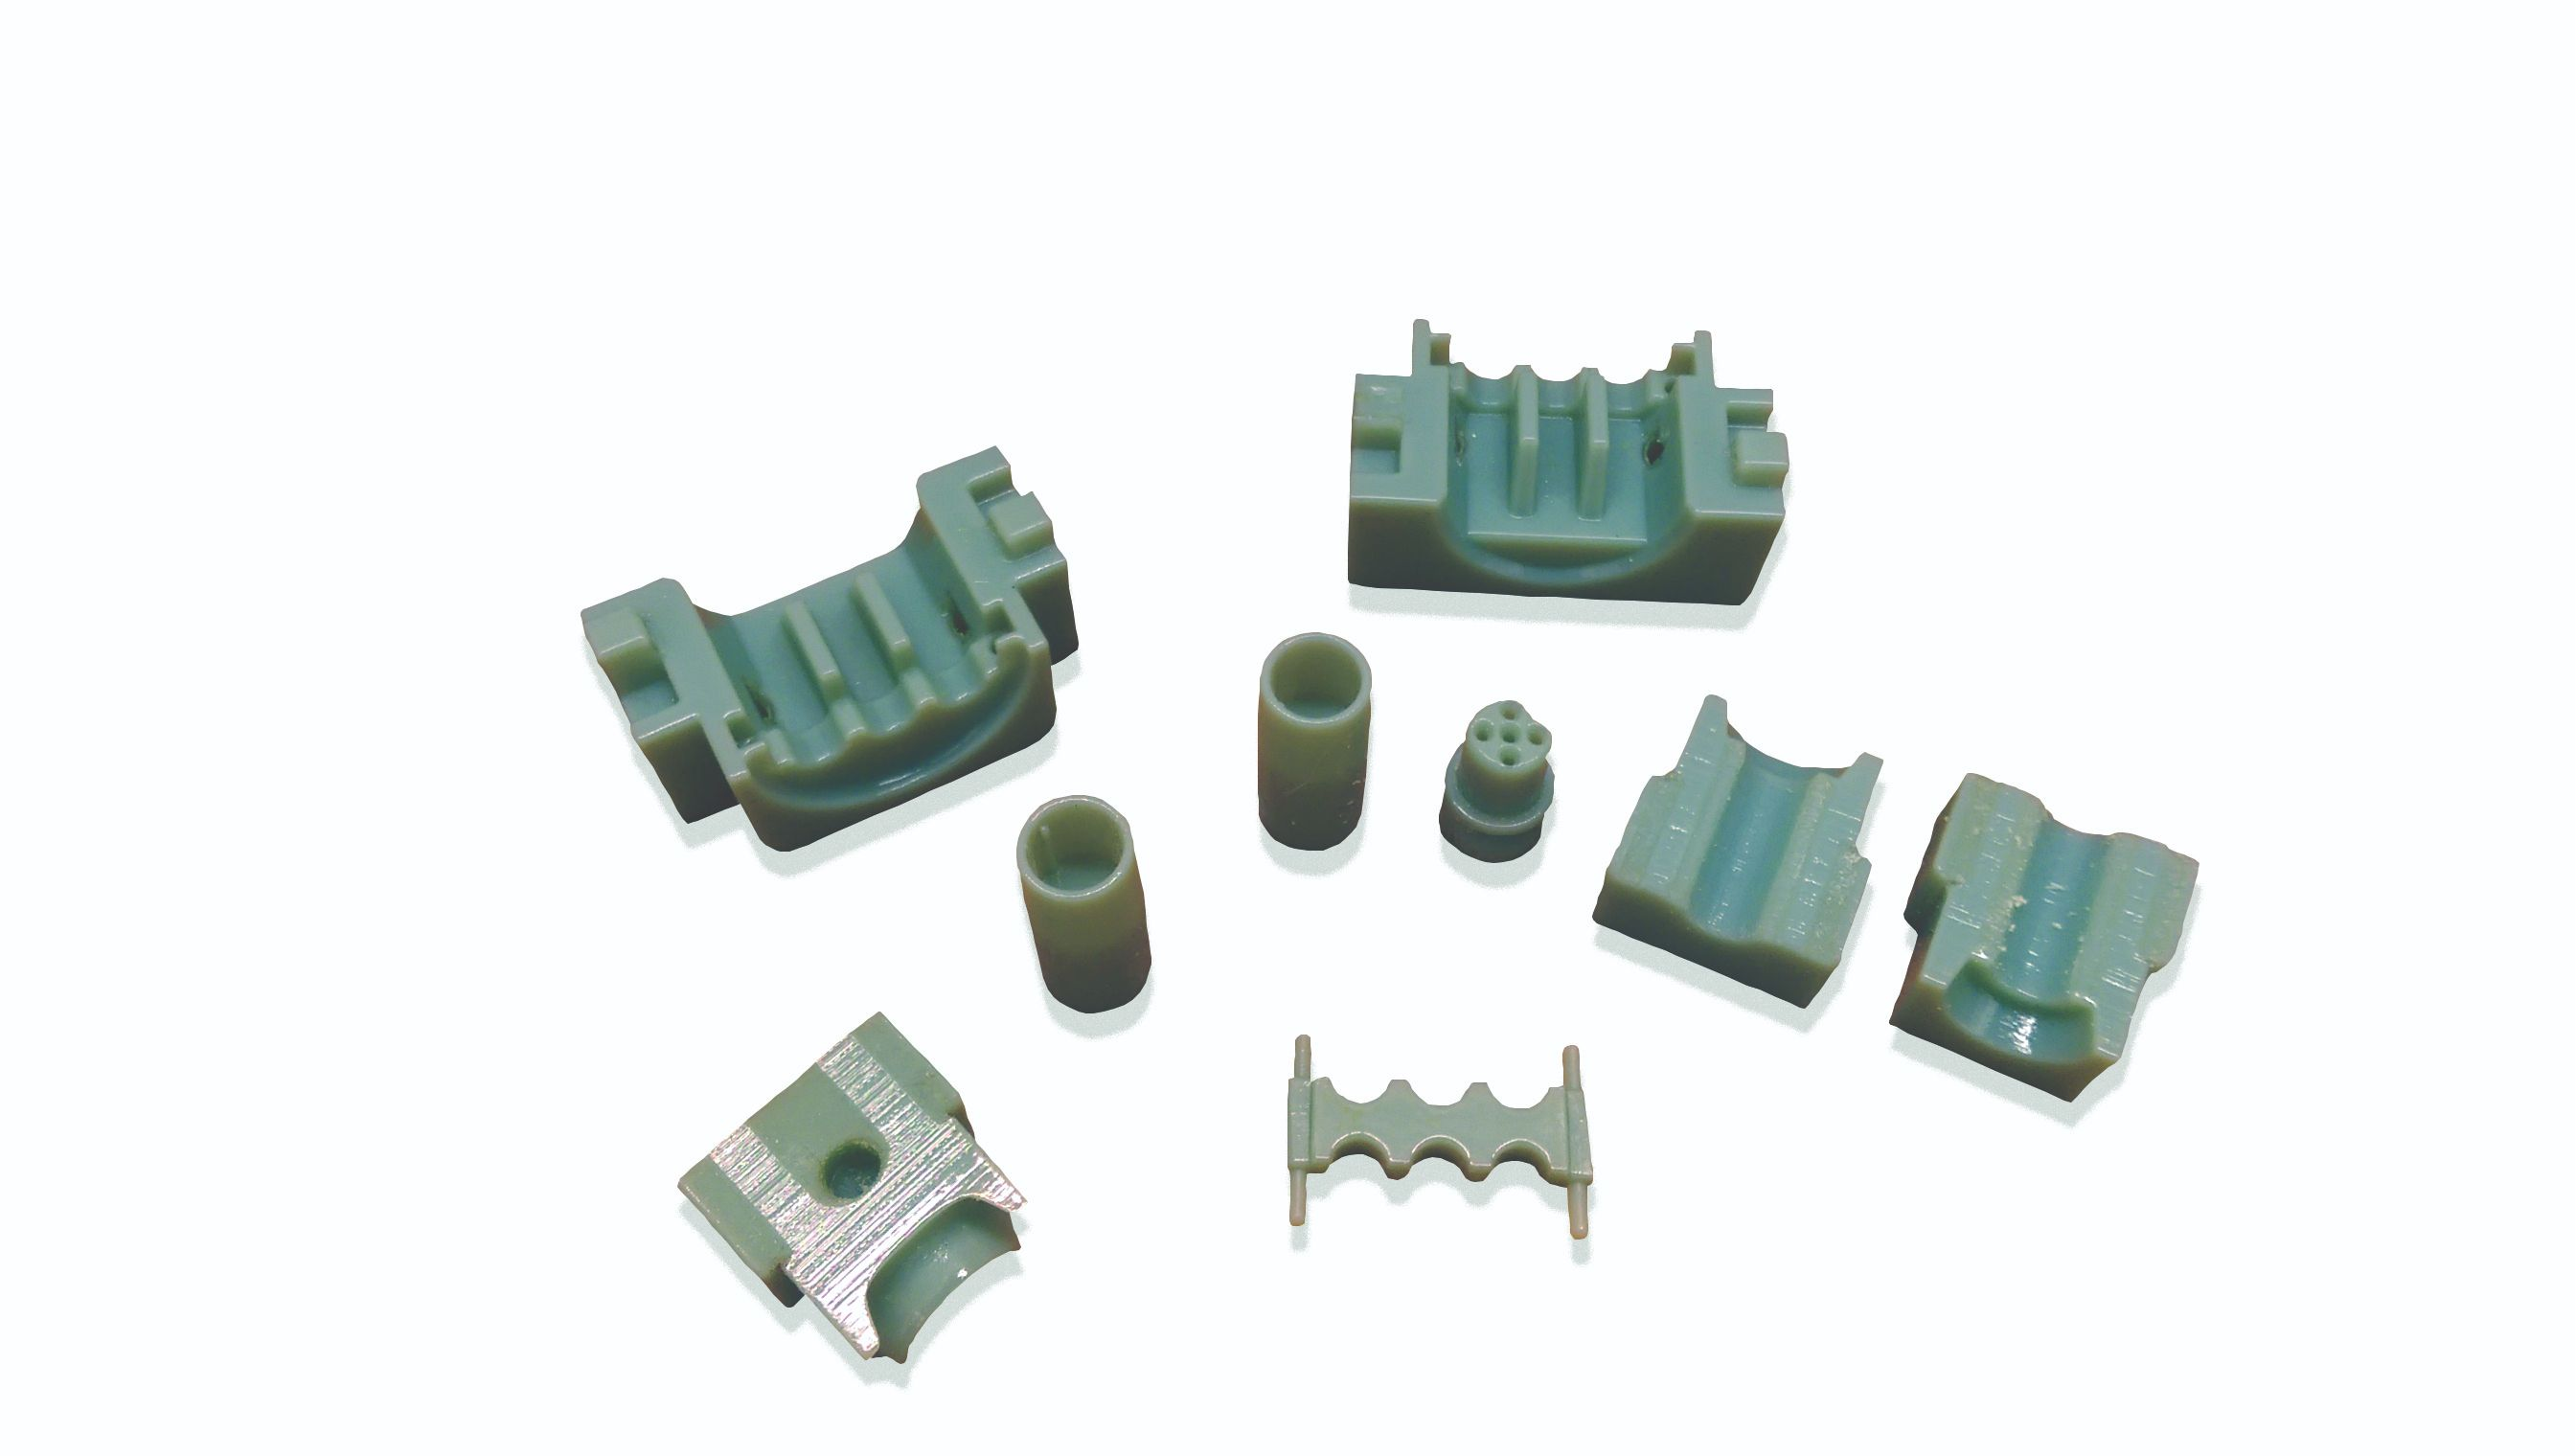 Digital ABS injection mold- Low volume production parts